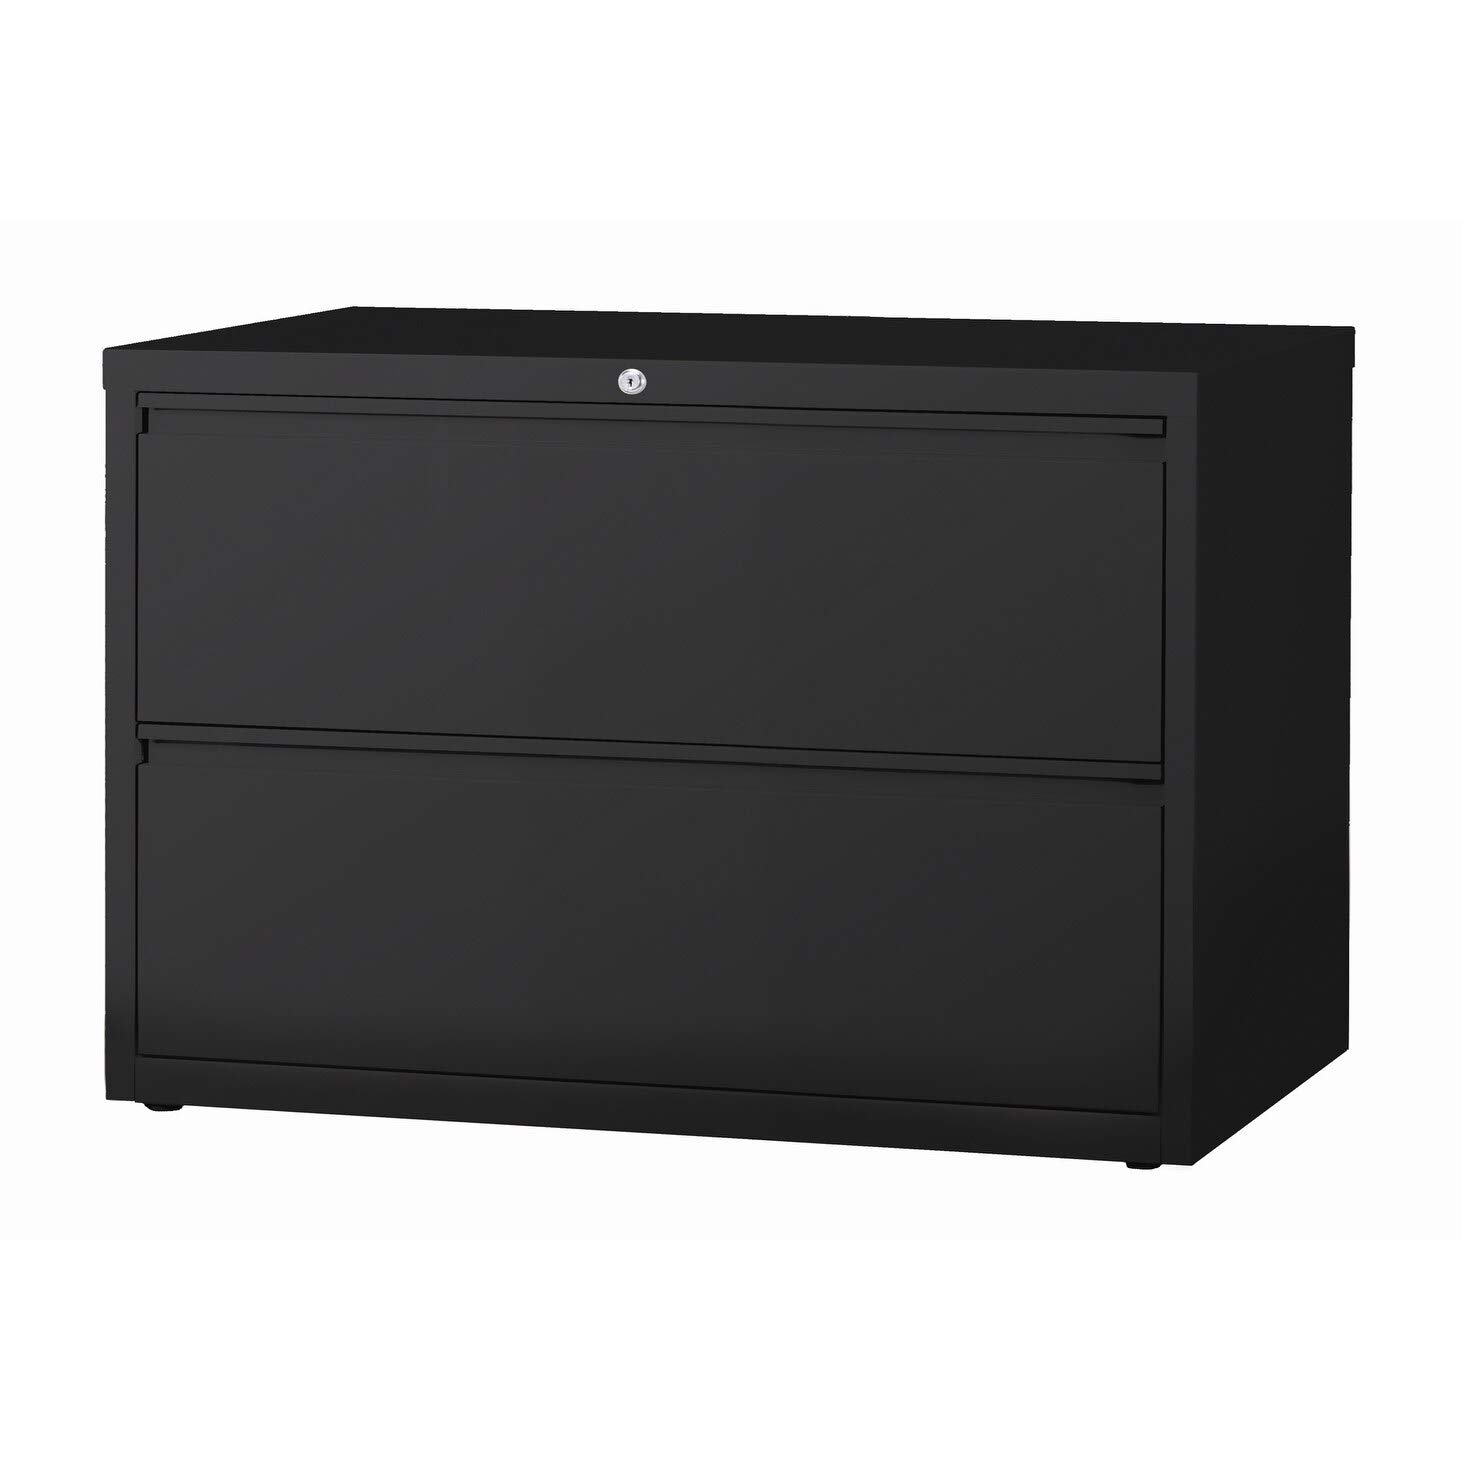 Hirsh HL8000 Series 42'' 2 Drawer Lateral File Cabinet in Black by Hirsh Industries